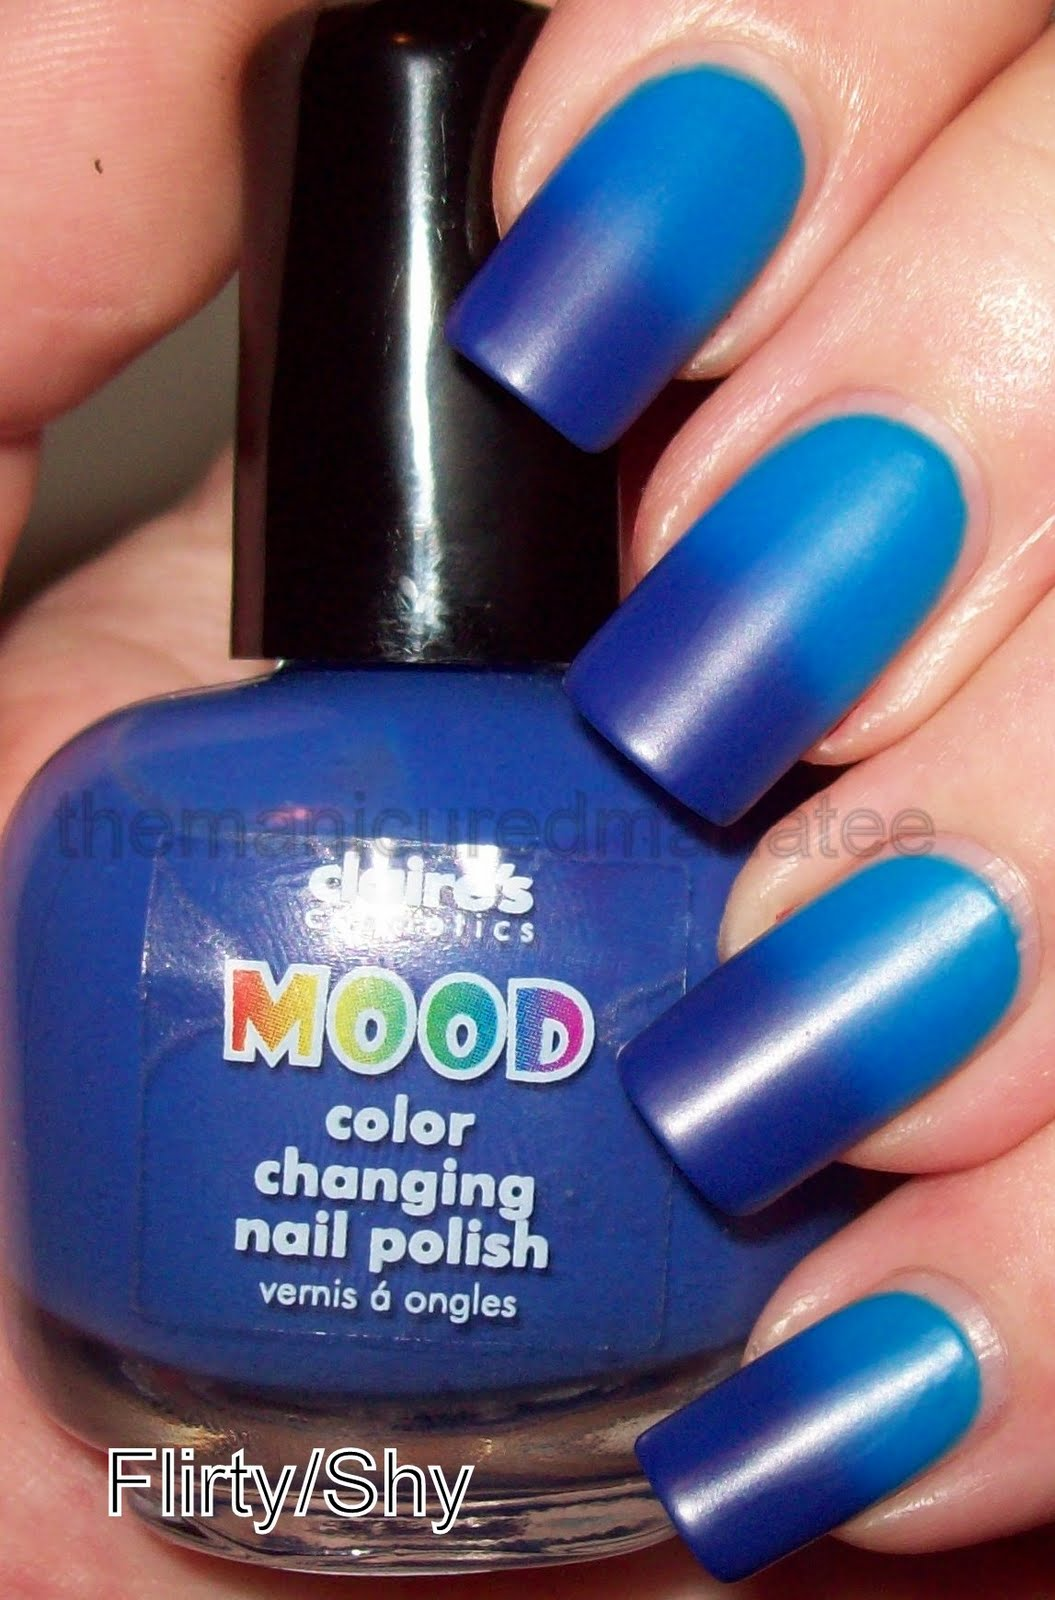 The Manicured Manatee: Claire\'s Mood Changing Polish Flirty/Shy